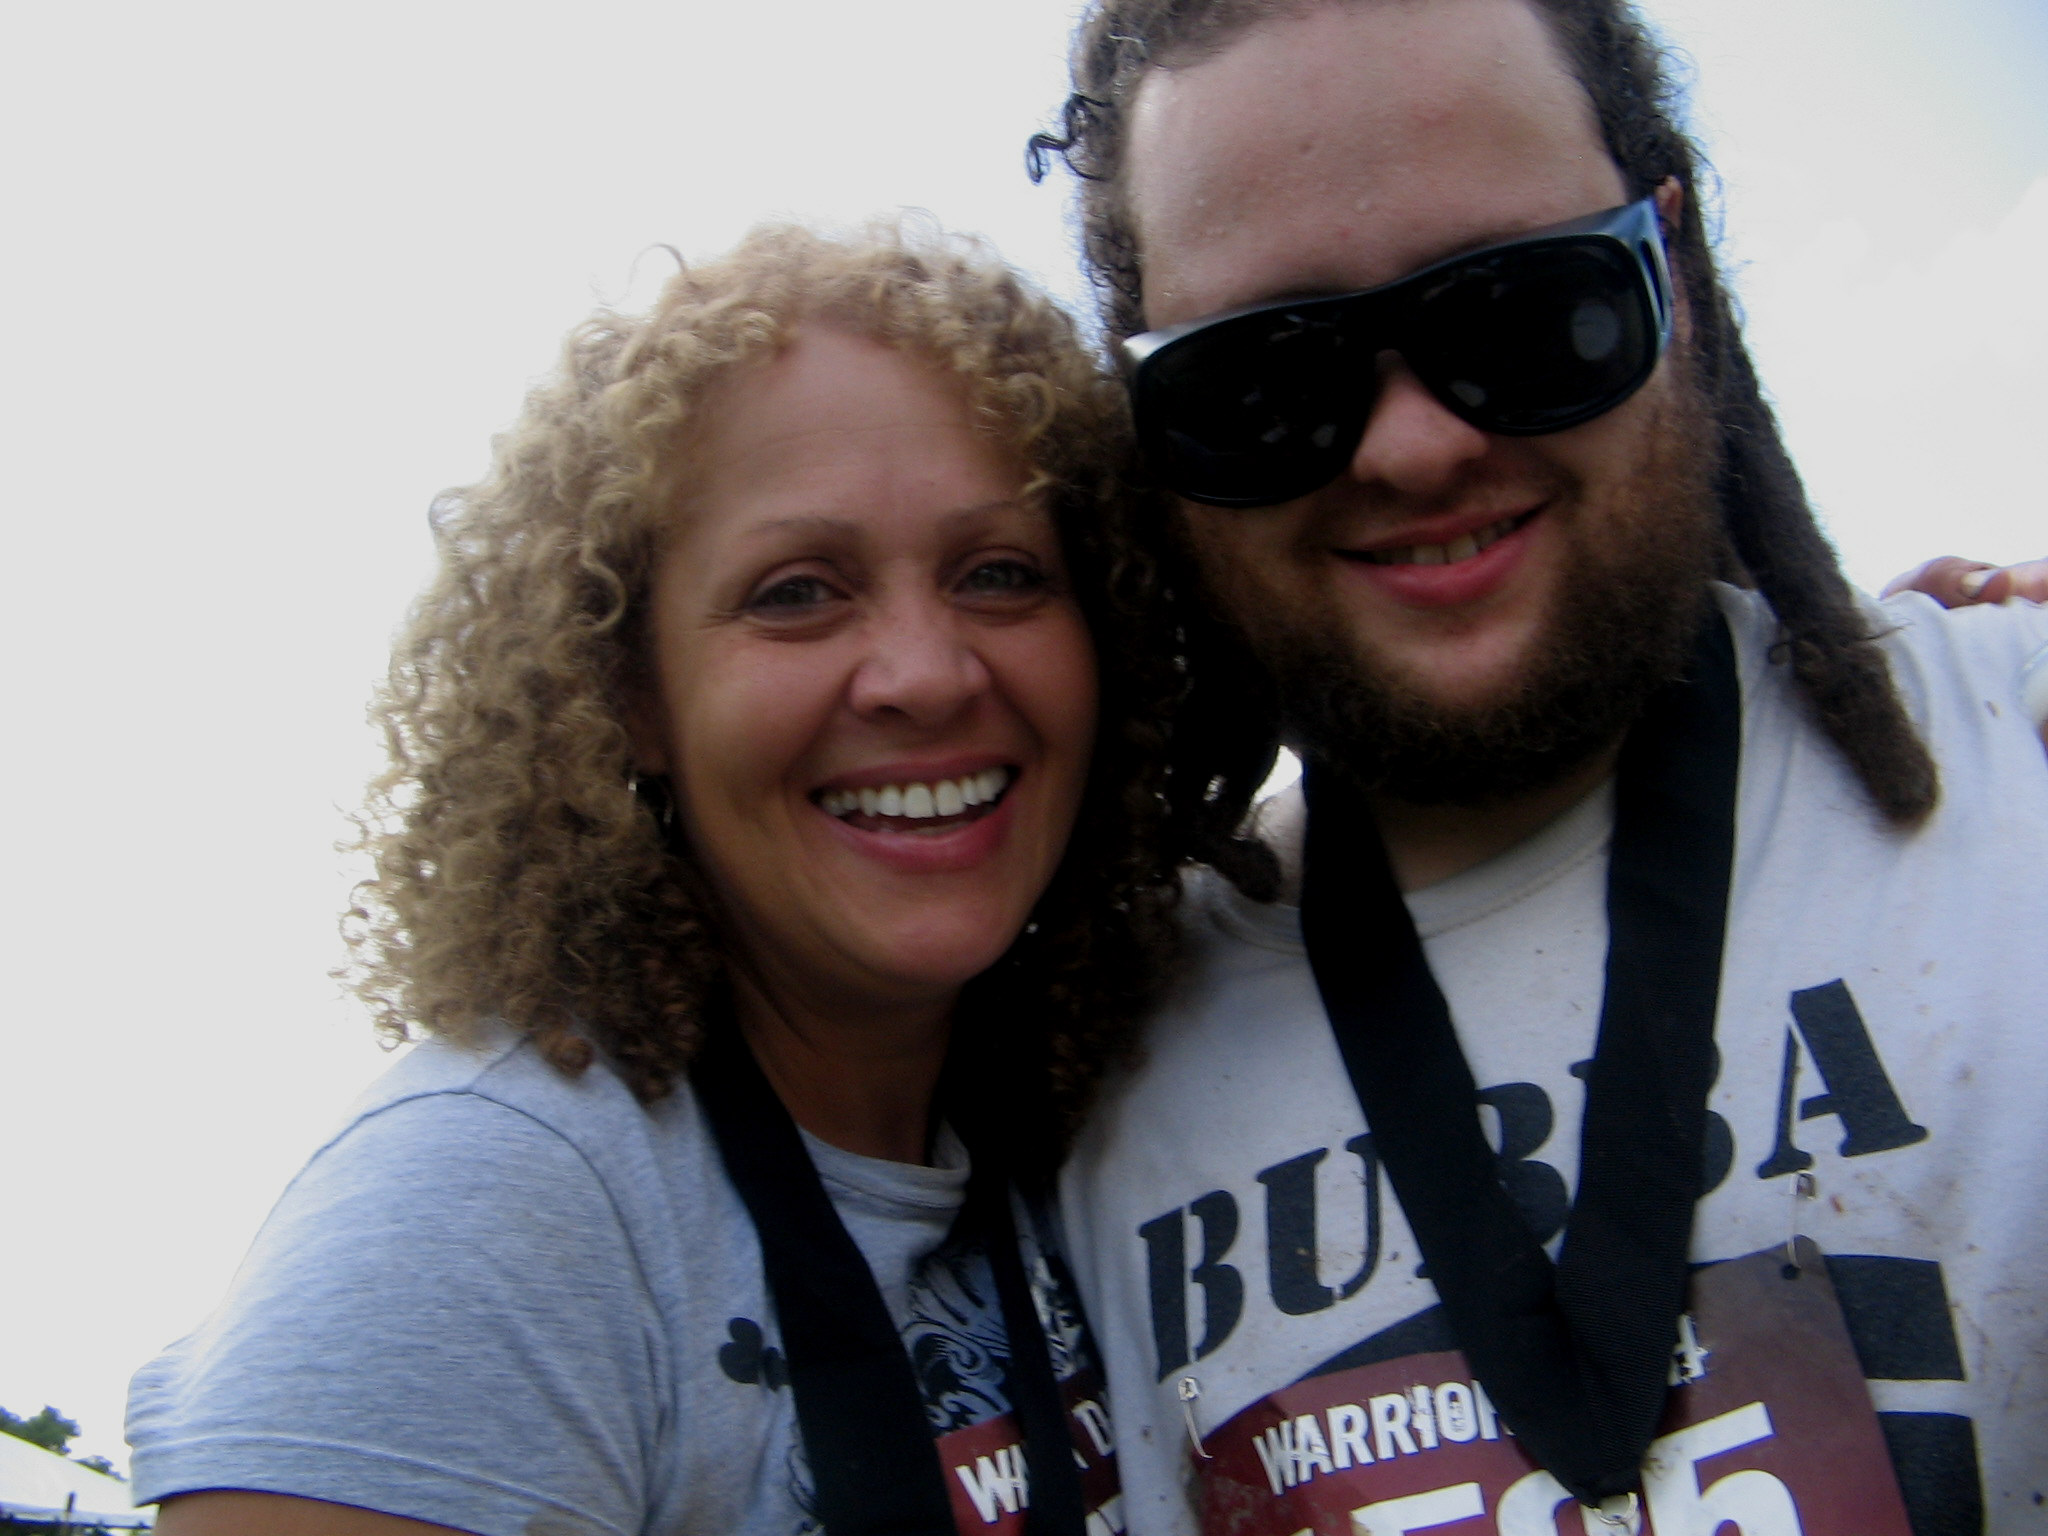 My son Simon and I after The Warrior Dash in July 2009